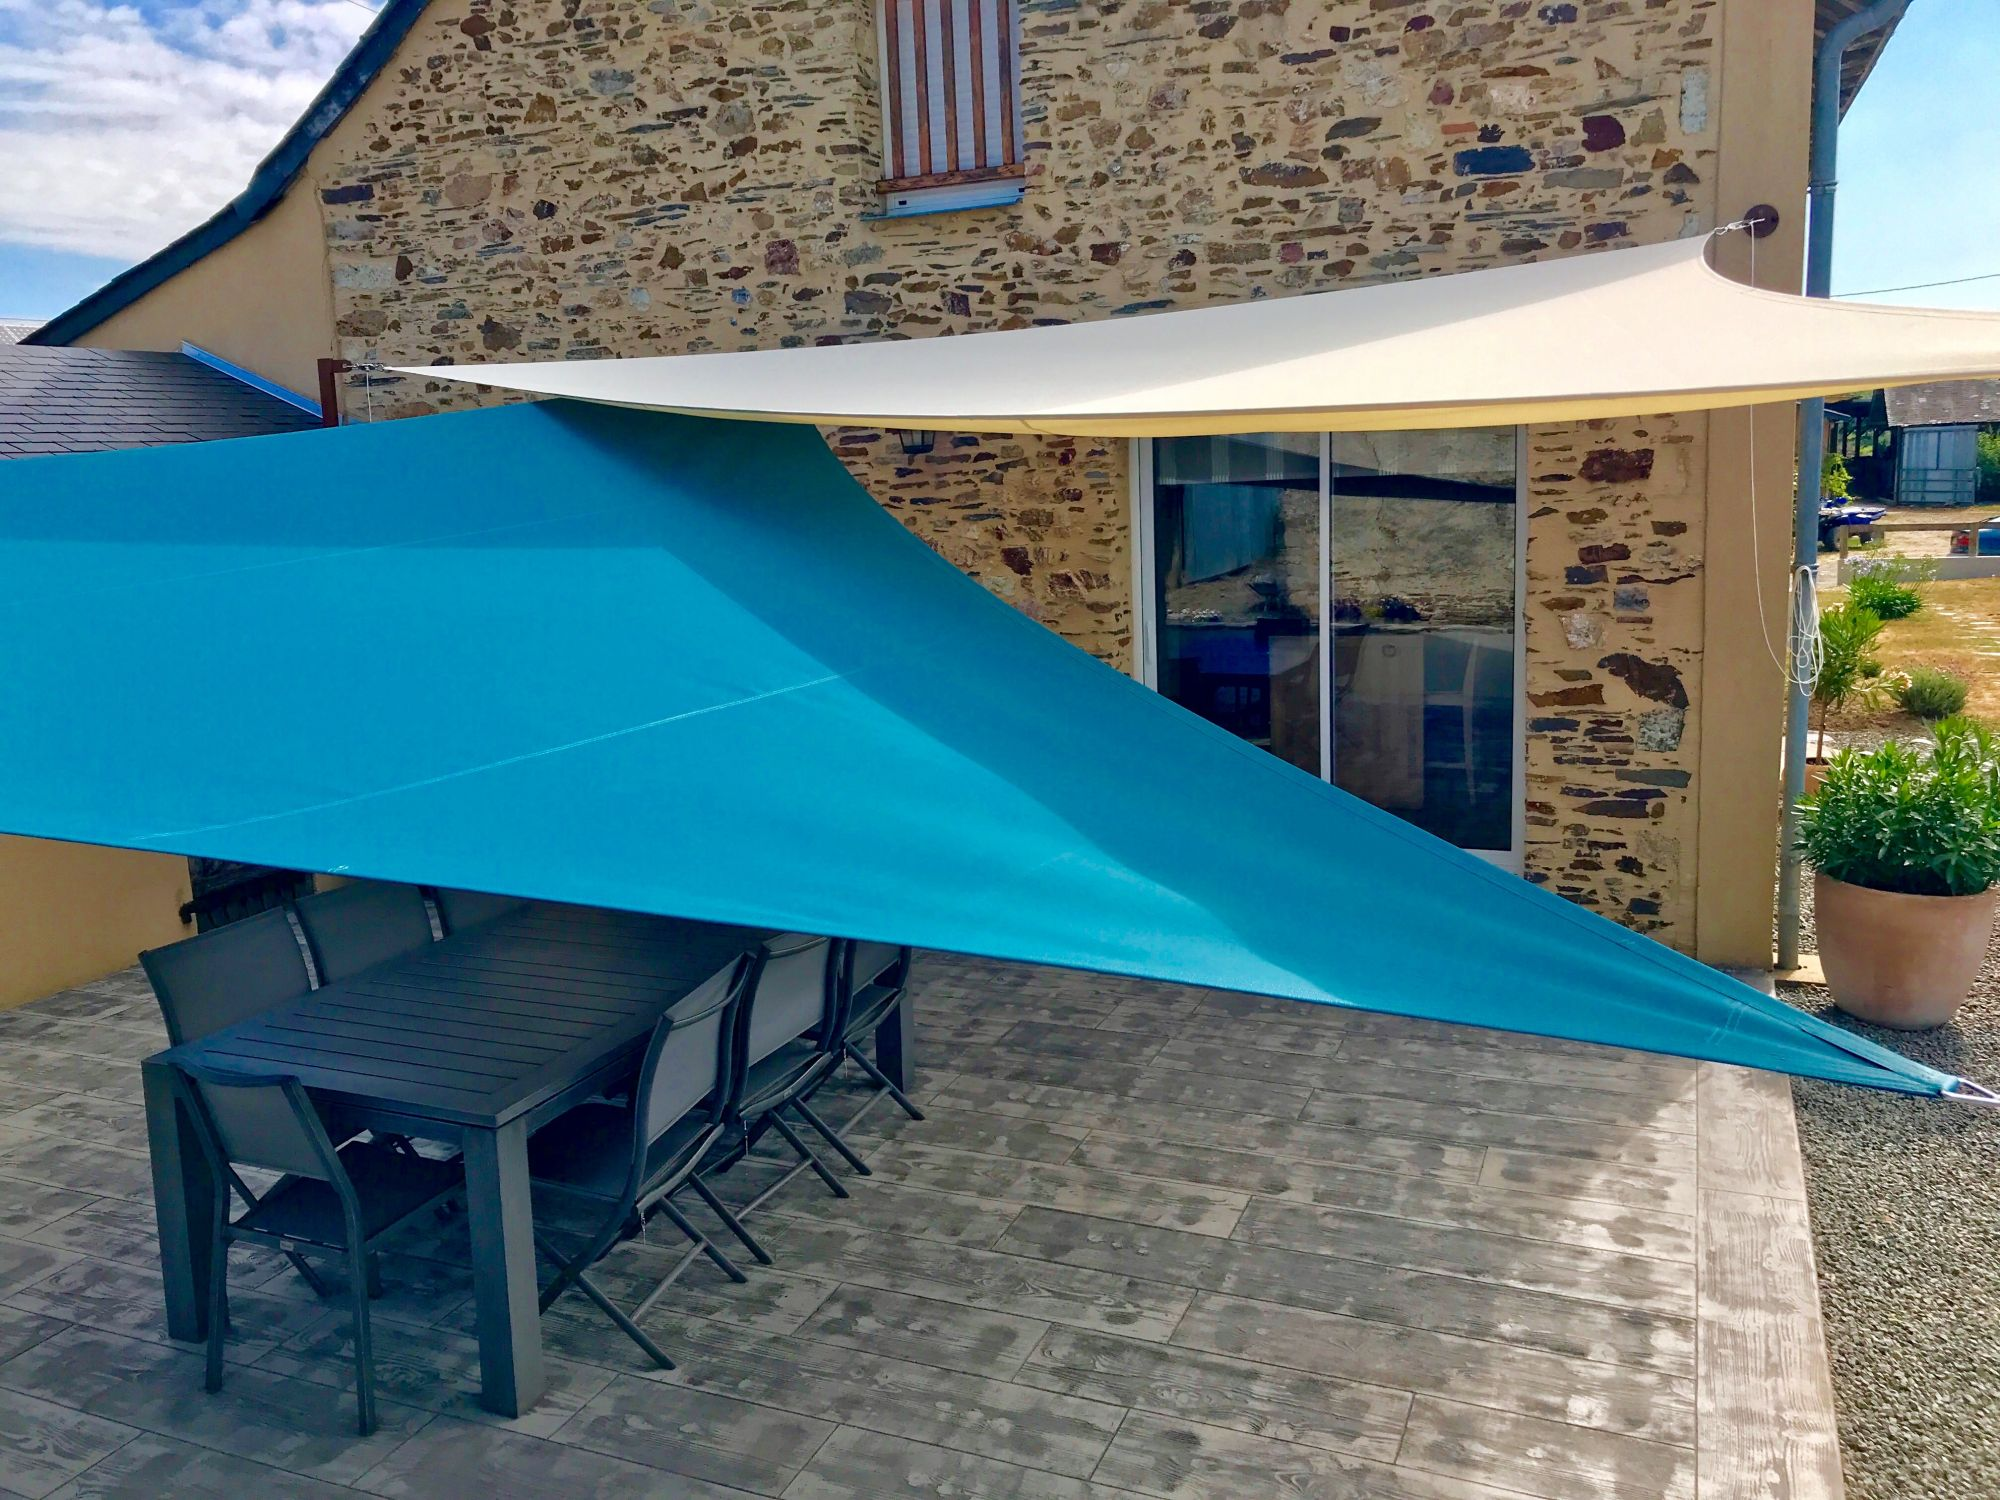 Meilleur Voile D Ombrage tarifs - made in pornic - voile d'ombrage - brise vue - parasol